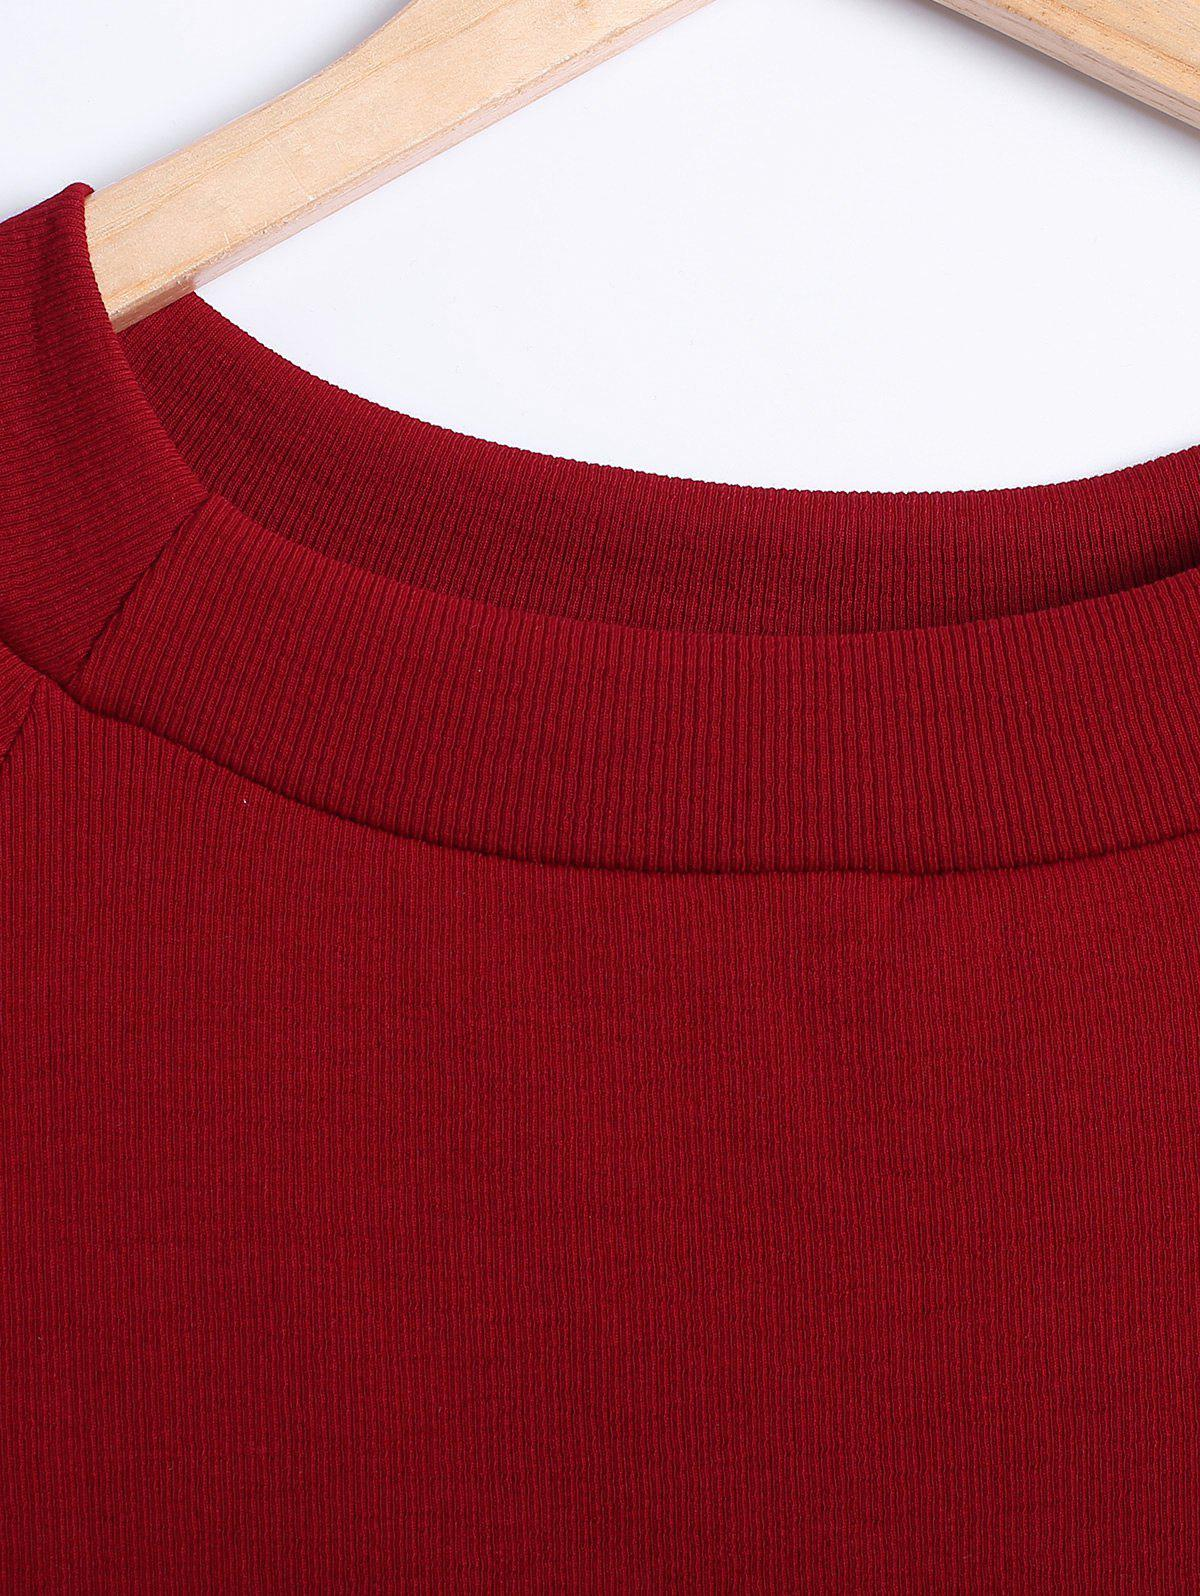 Organza Splicing de Bell manches courtes T-shirt - Rouge vineux ONE SIZE(FIT SIZE XS TO M)